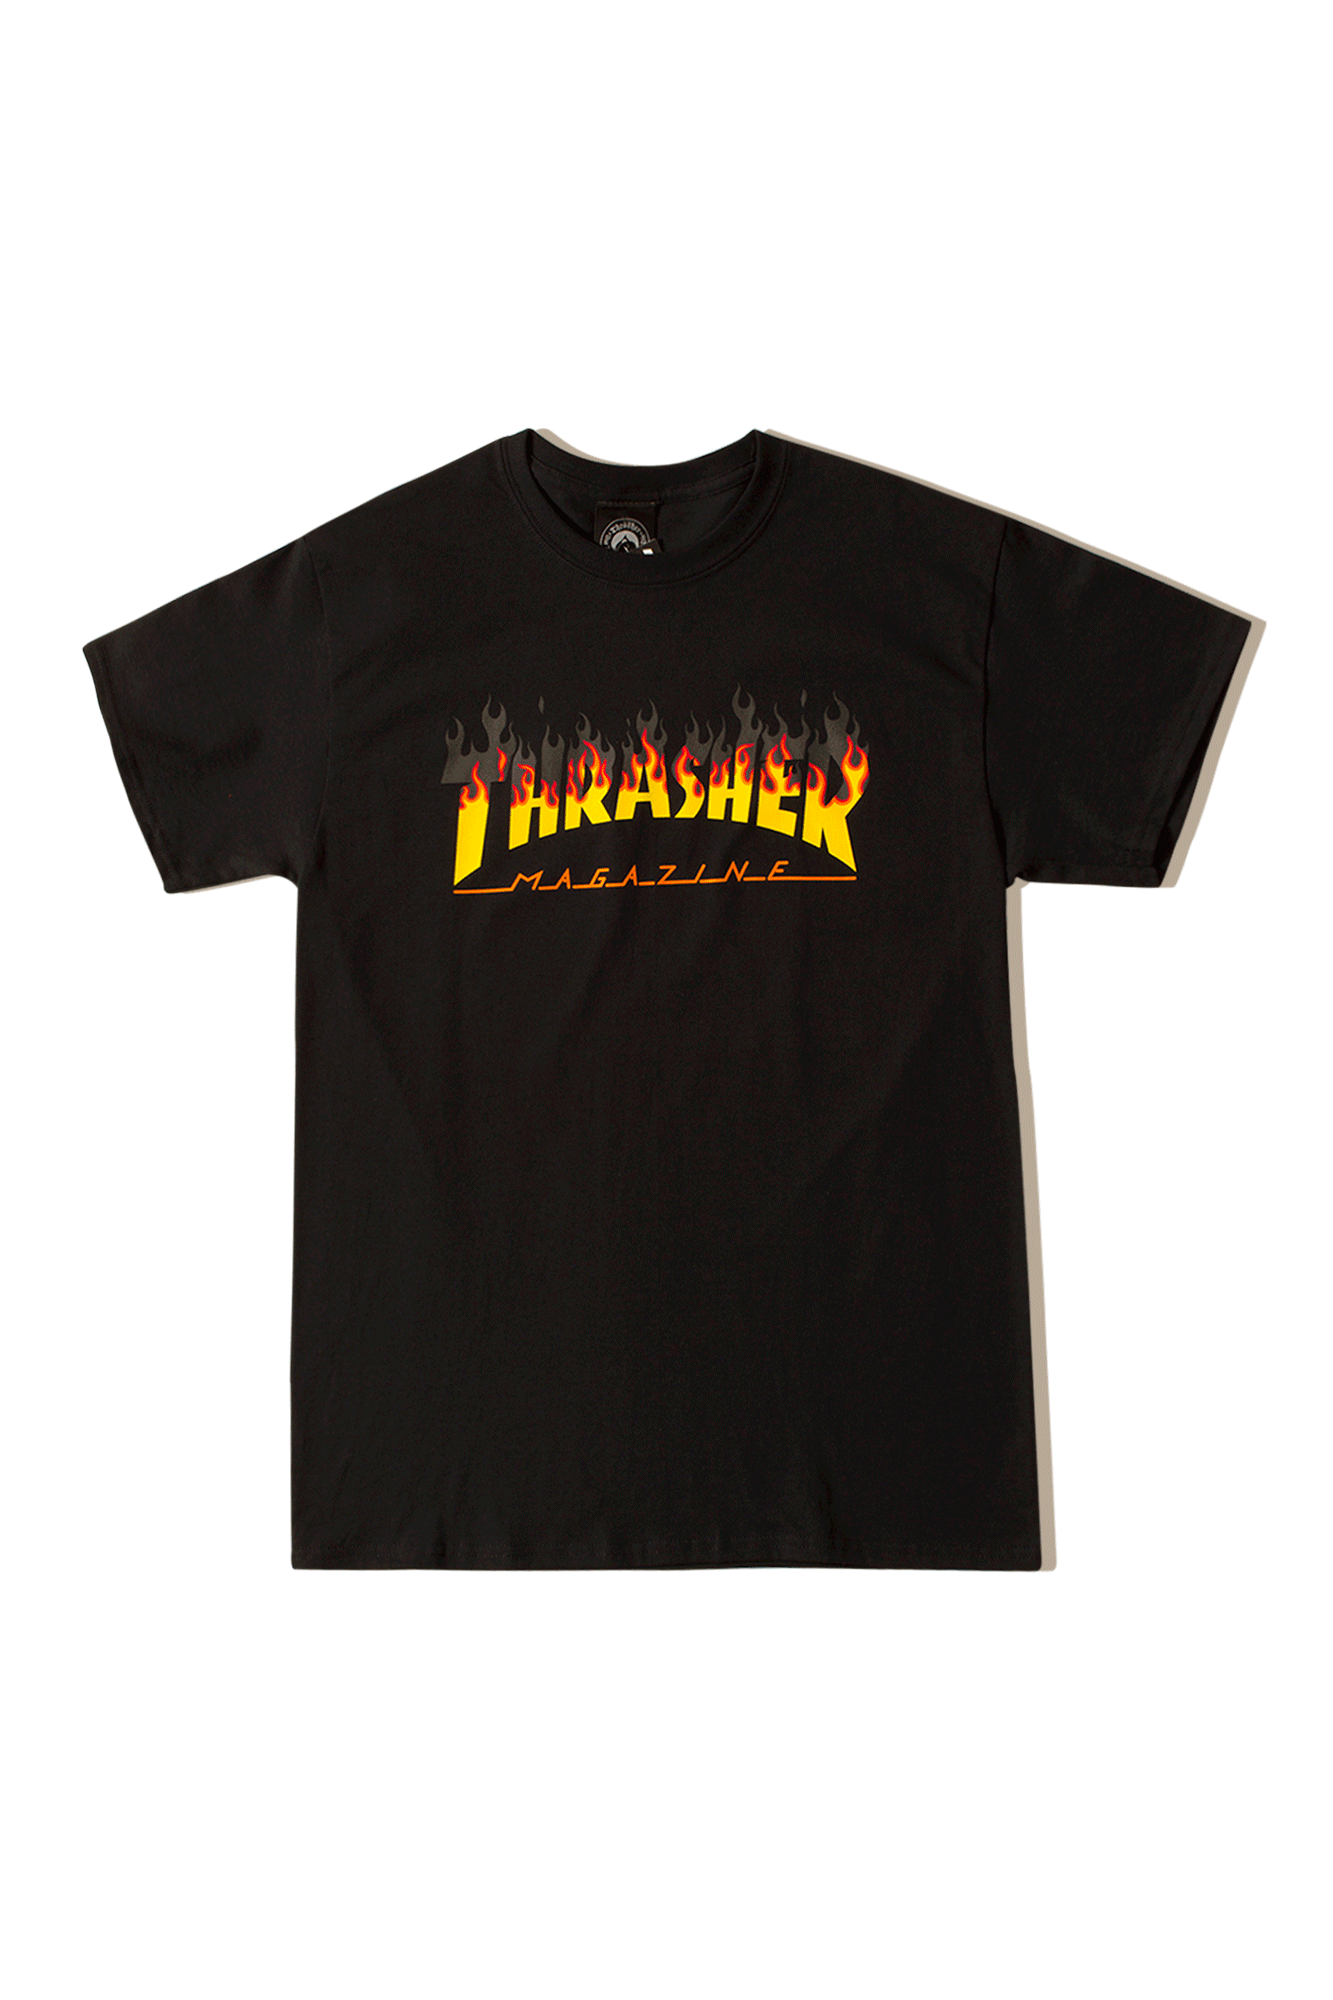 Thrasher T-Shirts BBQ T-Shirt Black 14643B#000#BLACK#S - One Block Down